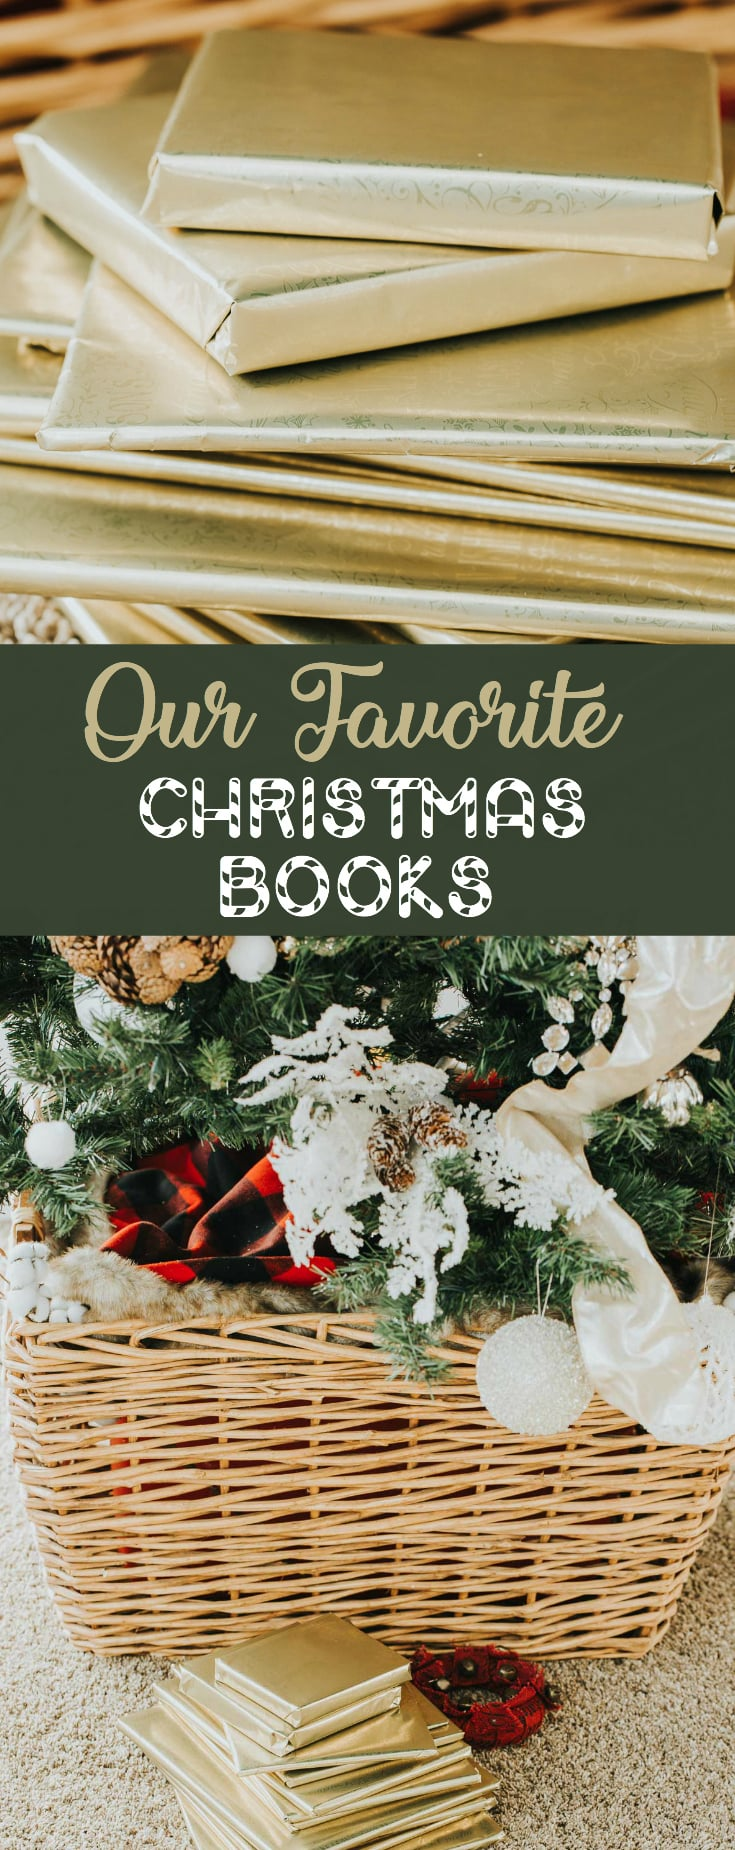 We love to read together as a family, but especially in the days before Christmas. It slows things down and these are our Favorite Christmas Books!